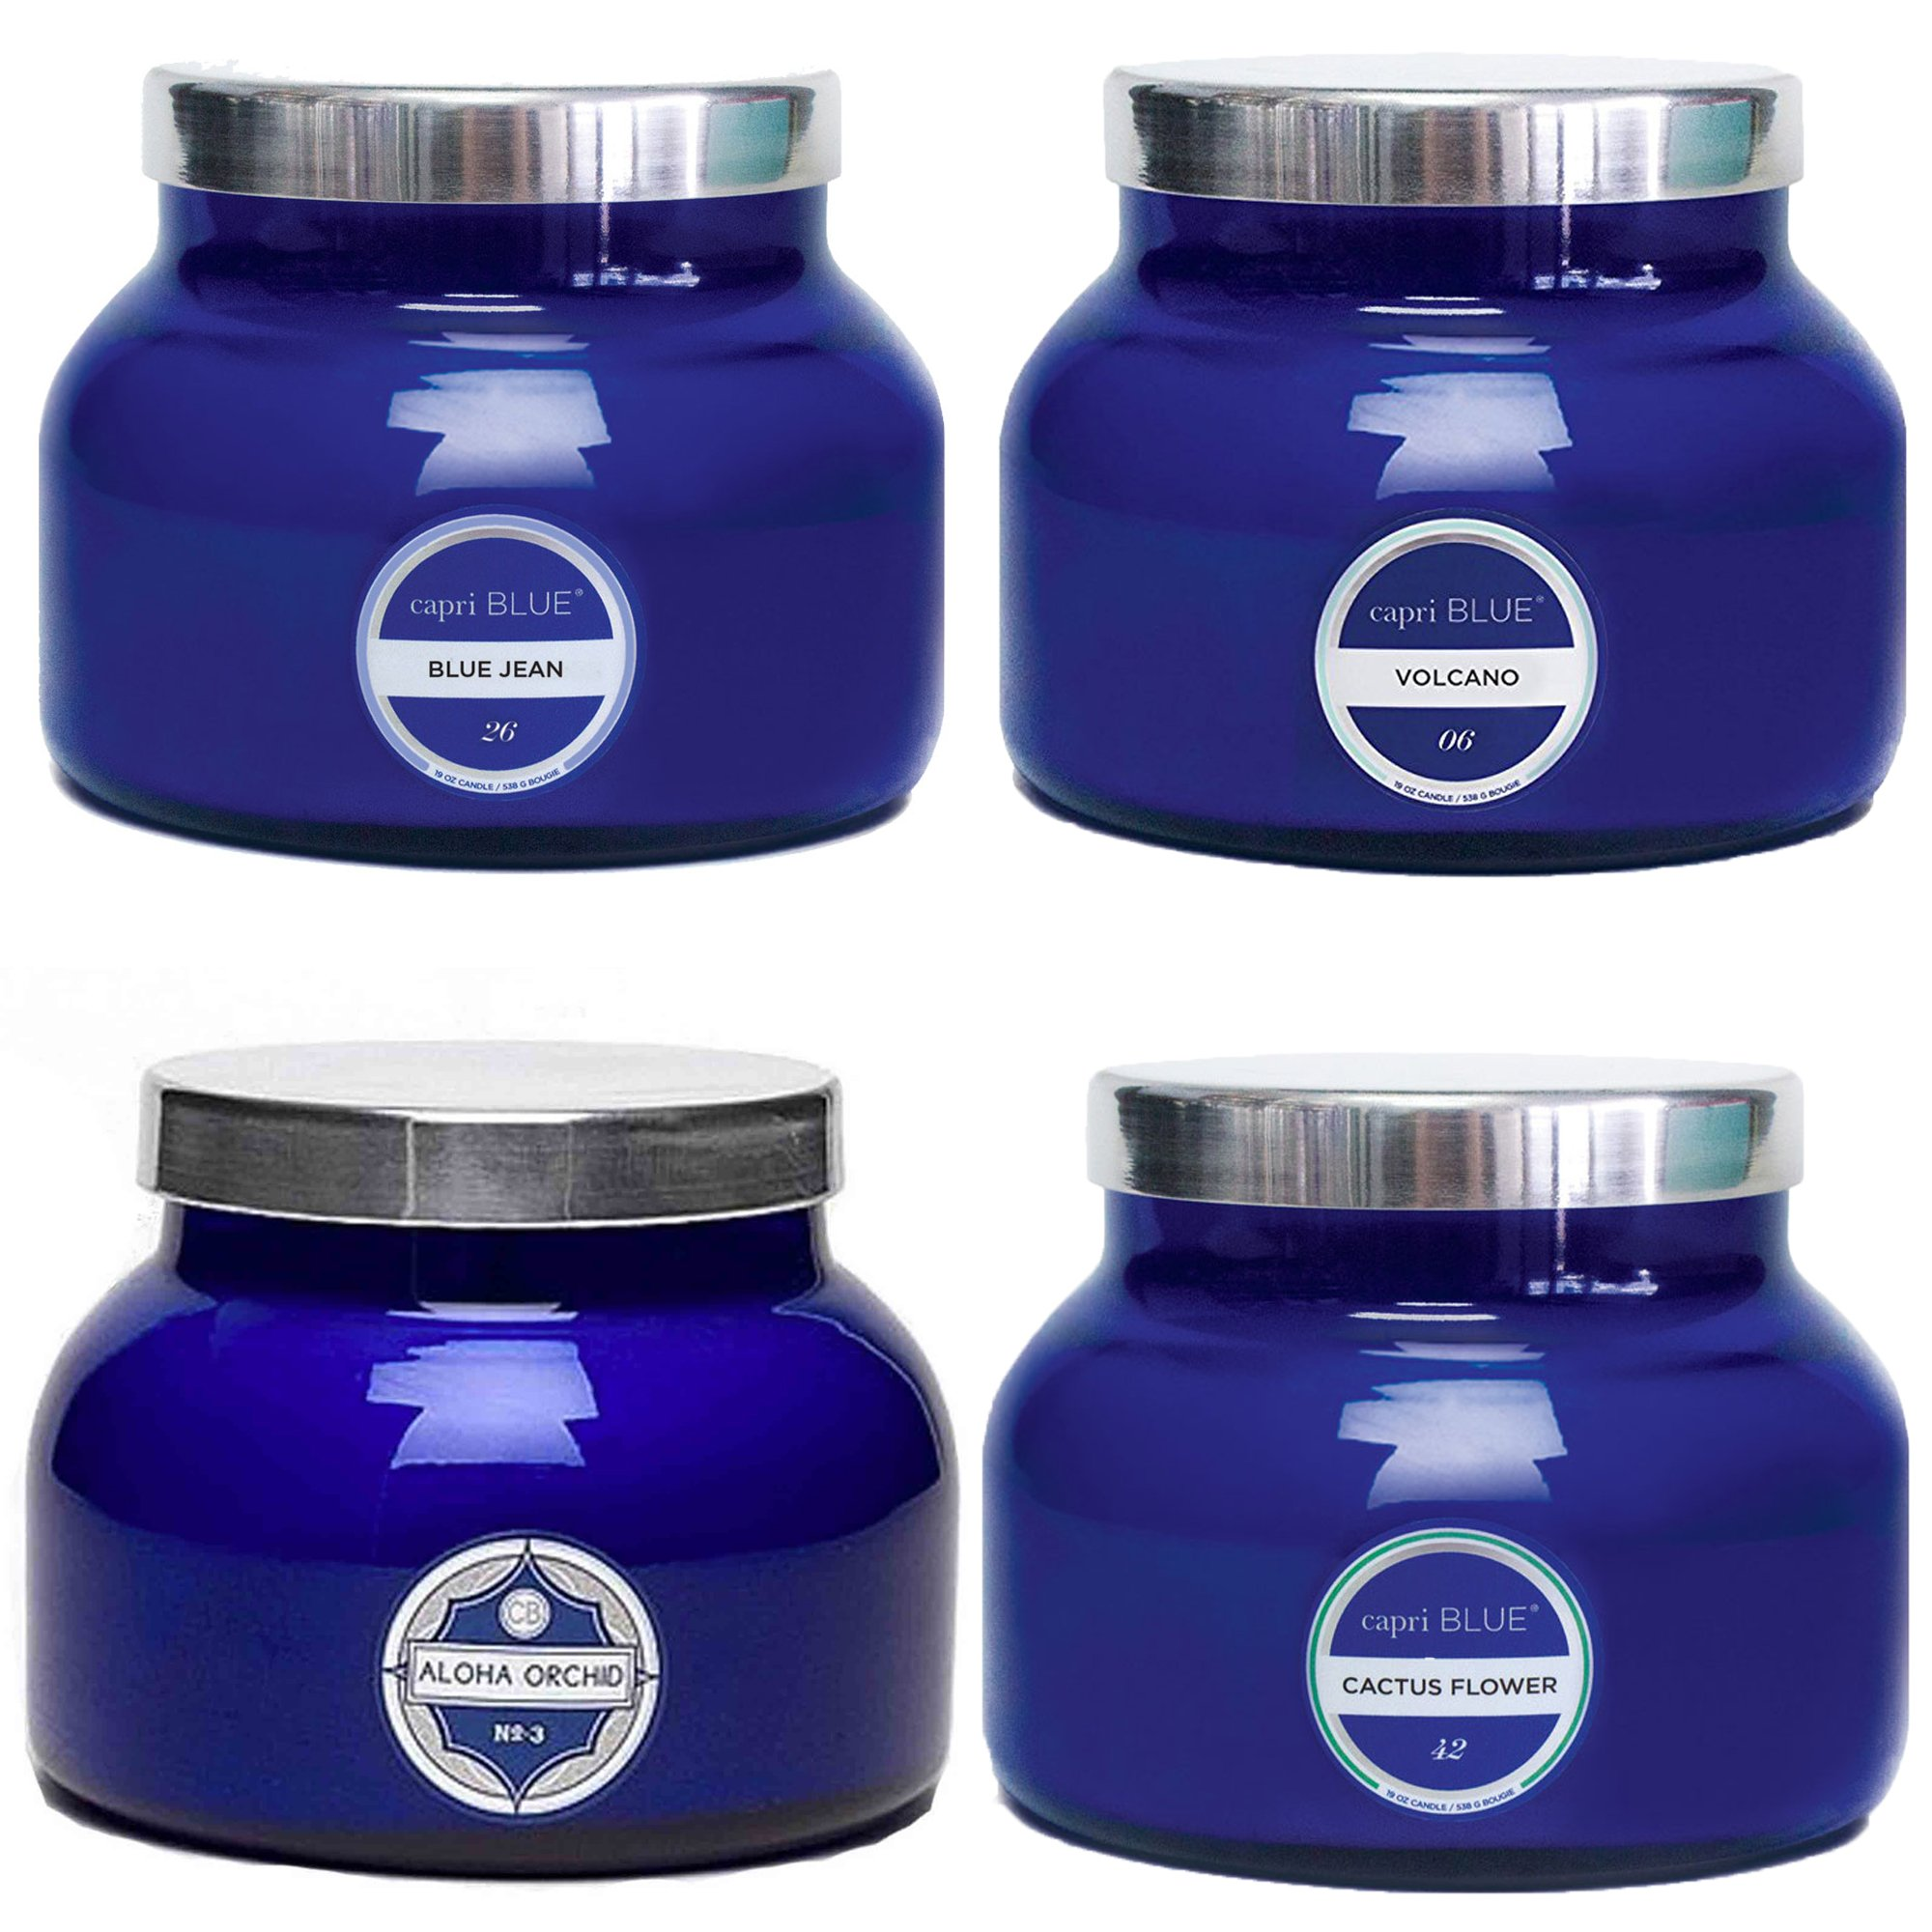 Capri Blue 19 oz 4 Scent Signature Blue Jar Candles (4 pack)